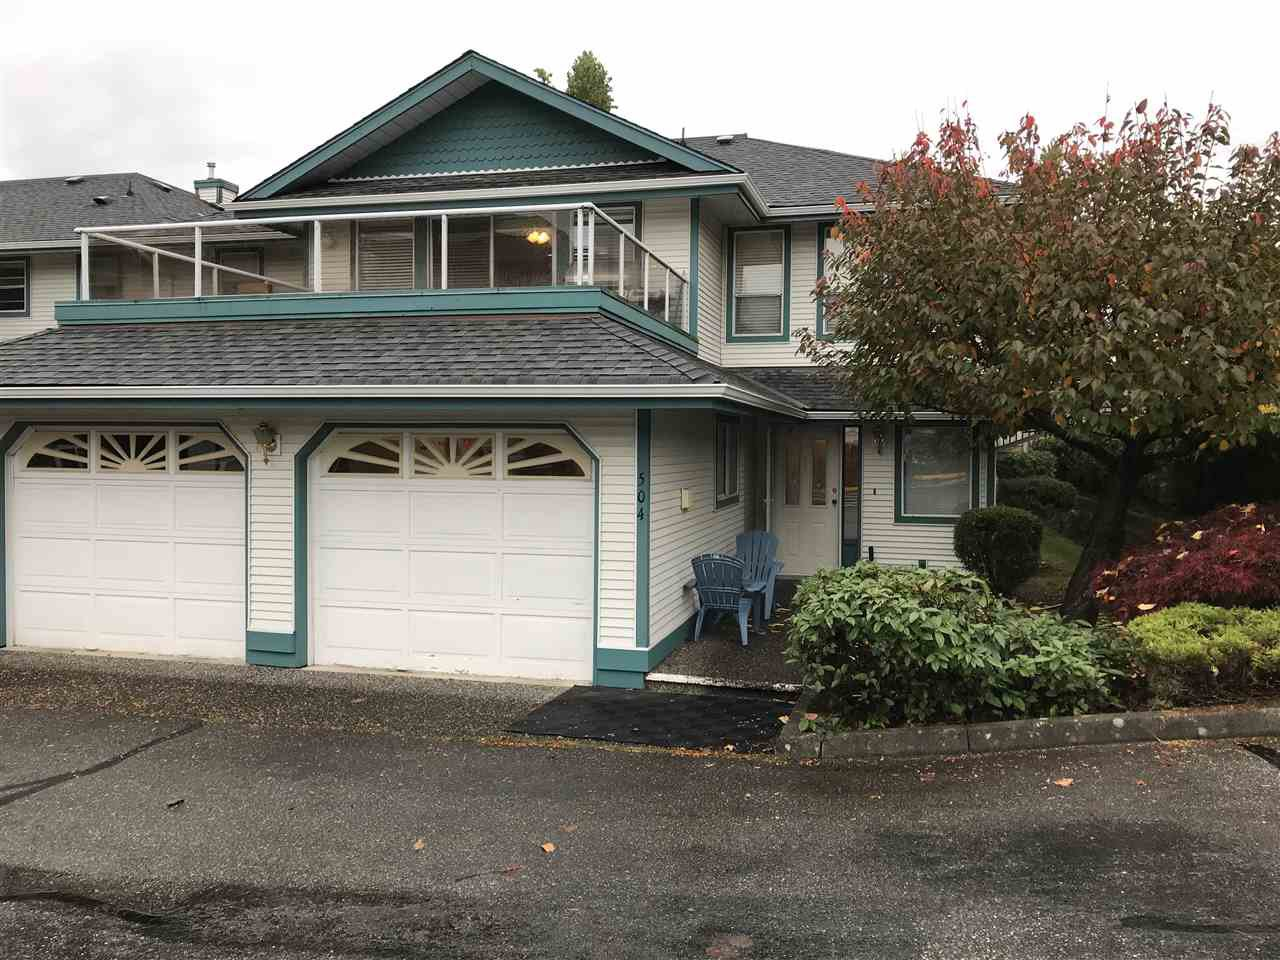 """Main Photo: 504 7500 COLUMBIA Street in Mission: Mission BC Townhouse for sale in """"Edwards Estates"""" : MLS®# R2318364"""